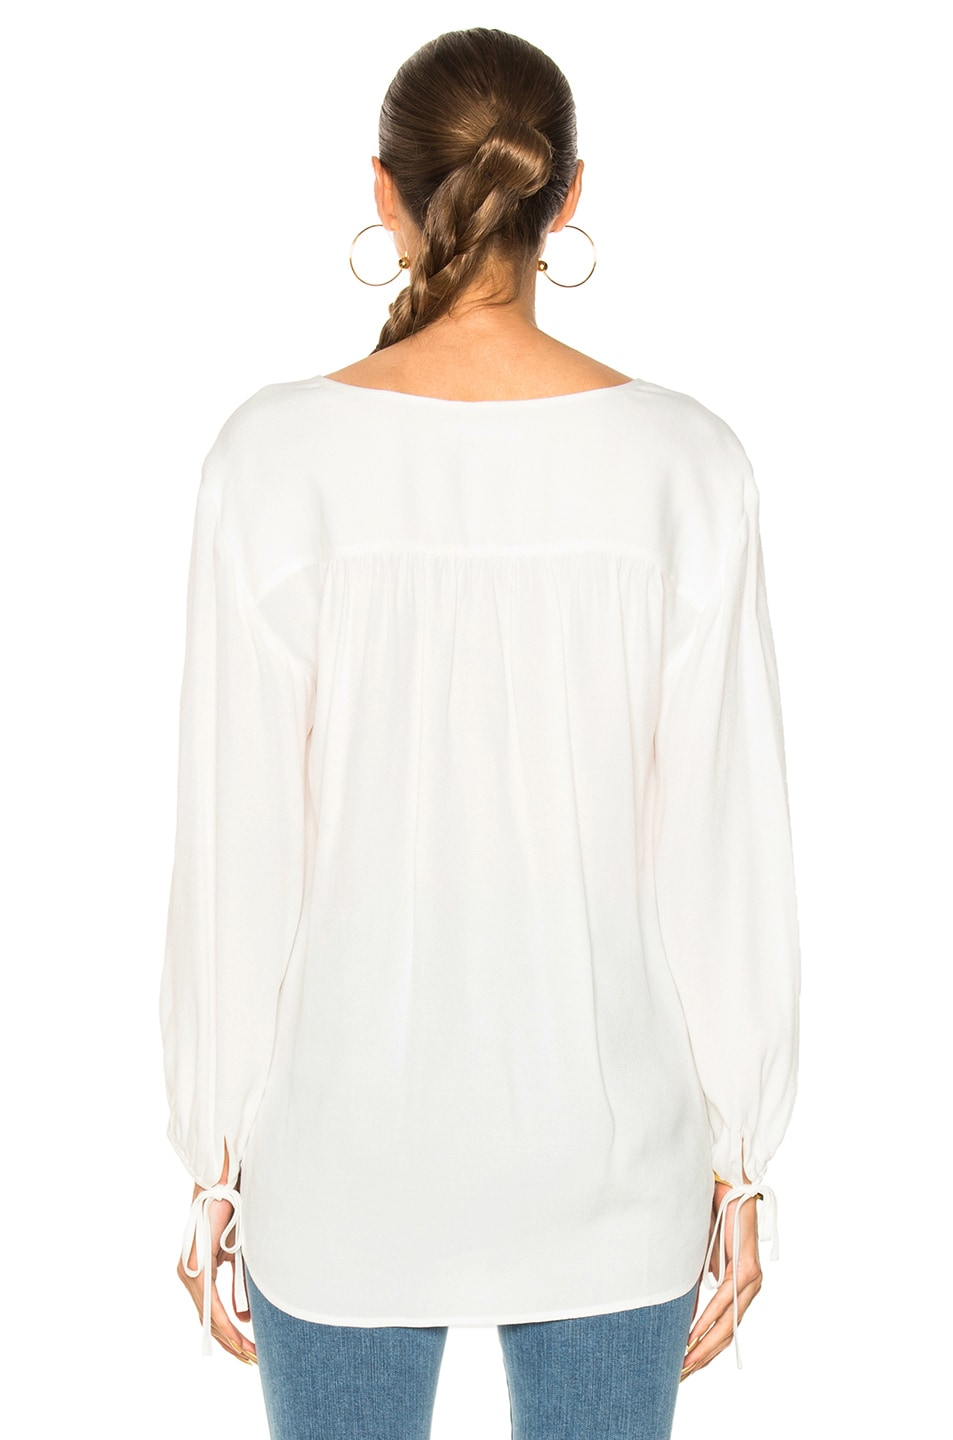 image 3 of frame denim crepe lace up shirt in off white